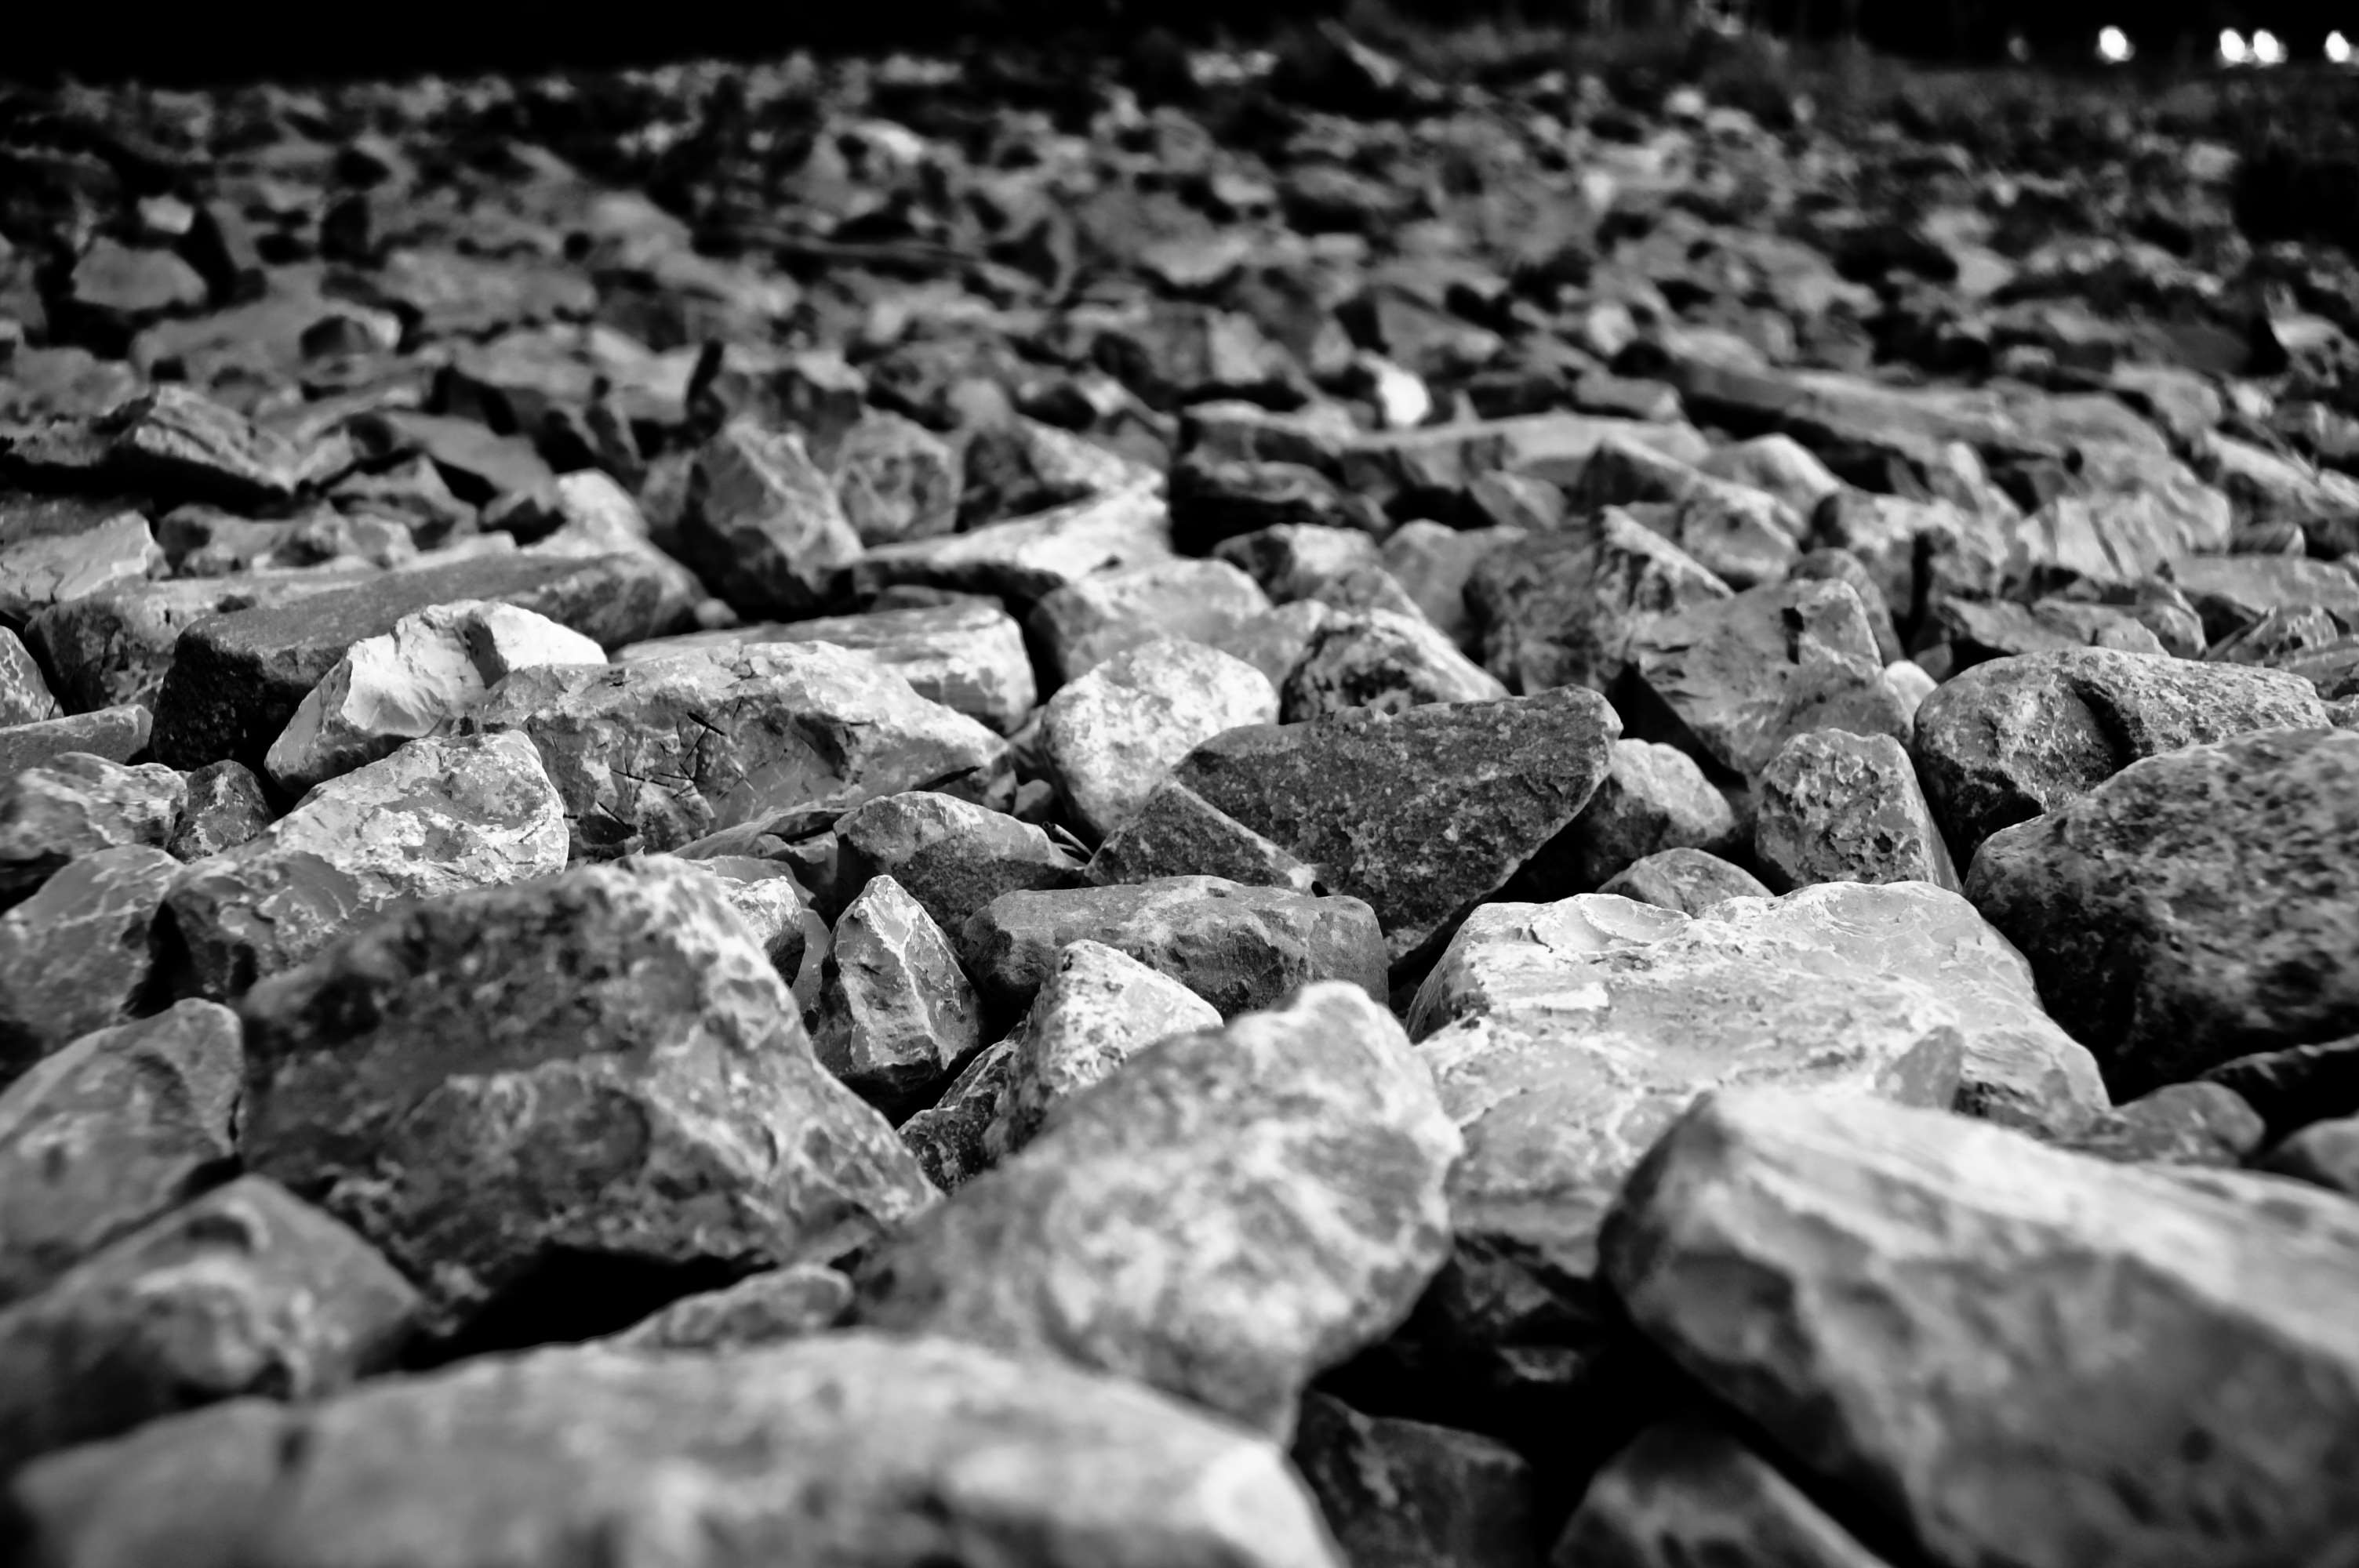 3008x2000 black and white, gravel, grey, hard, landscaping, rocks, stone wallpaper  and background